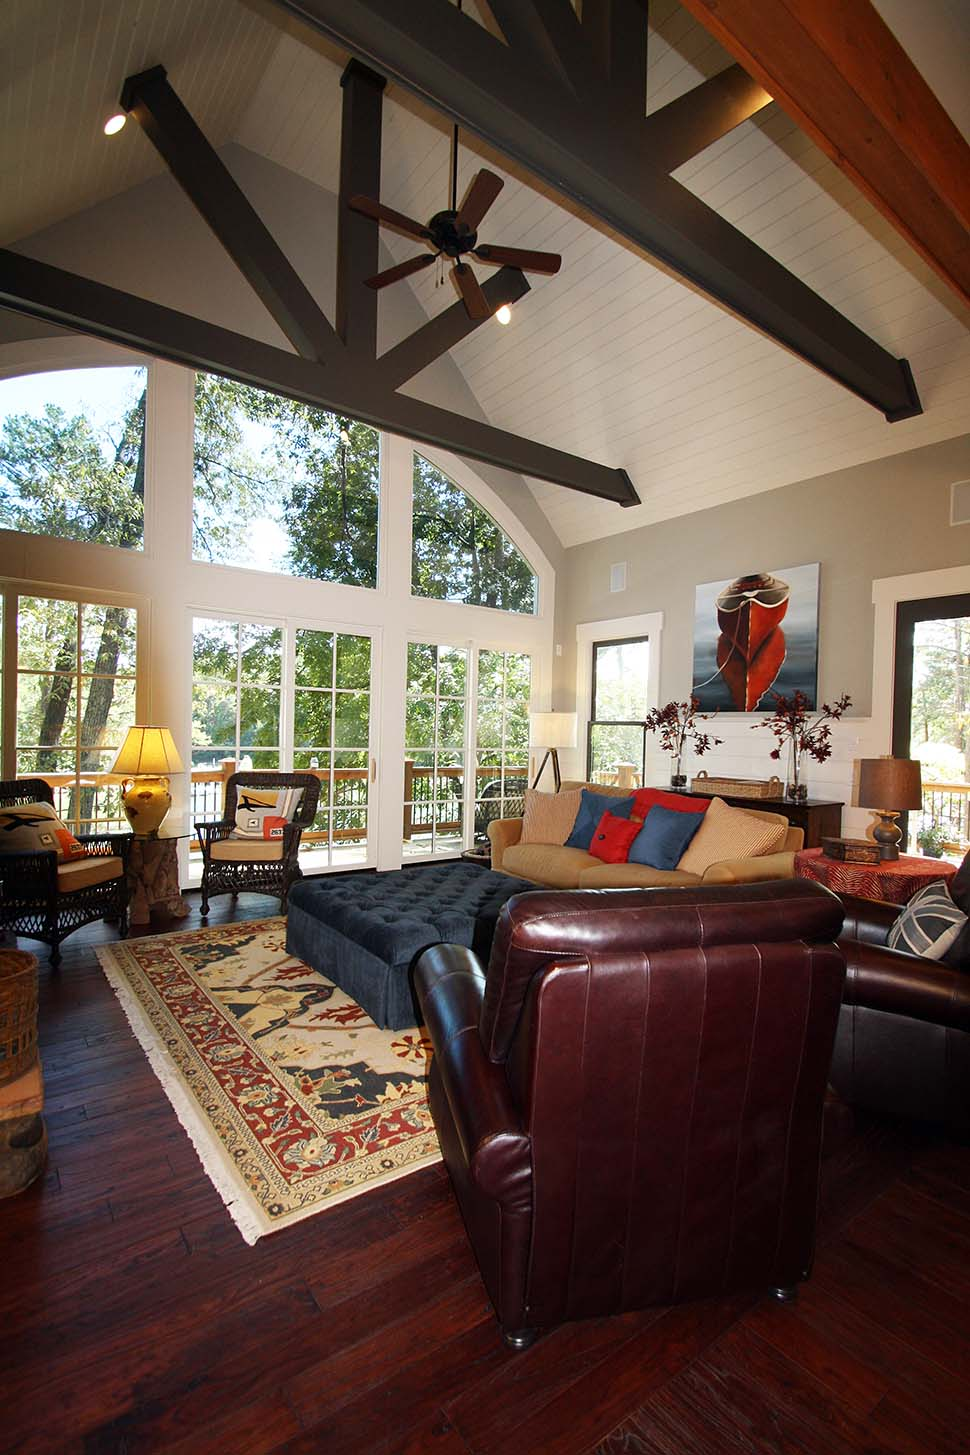 Craftsman, One-Story, Ranch, Traditional House Plan 97687 with 3 Beds, 3 Baths, 2 Car Garage Picture 4